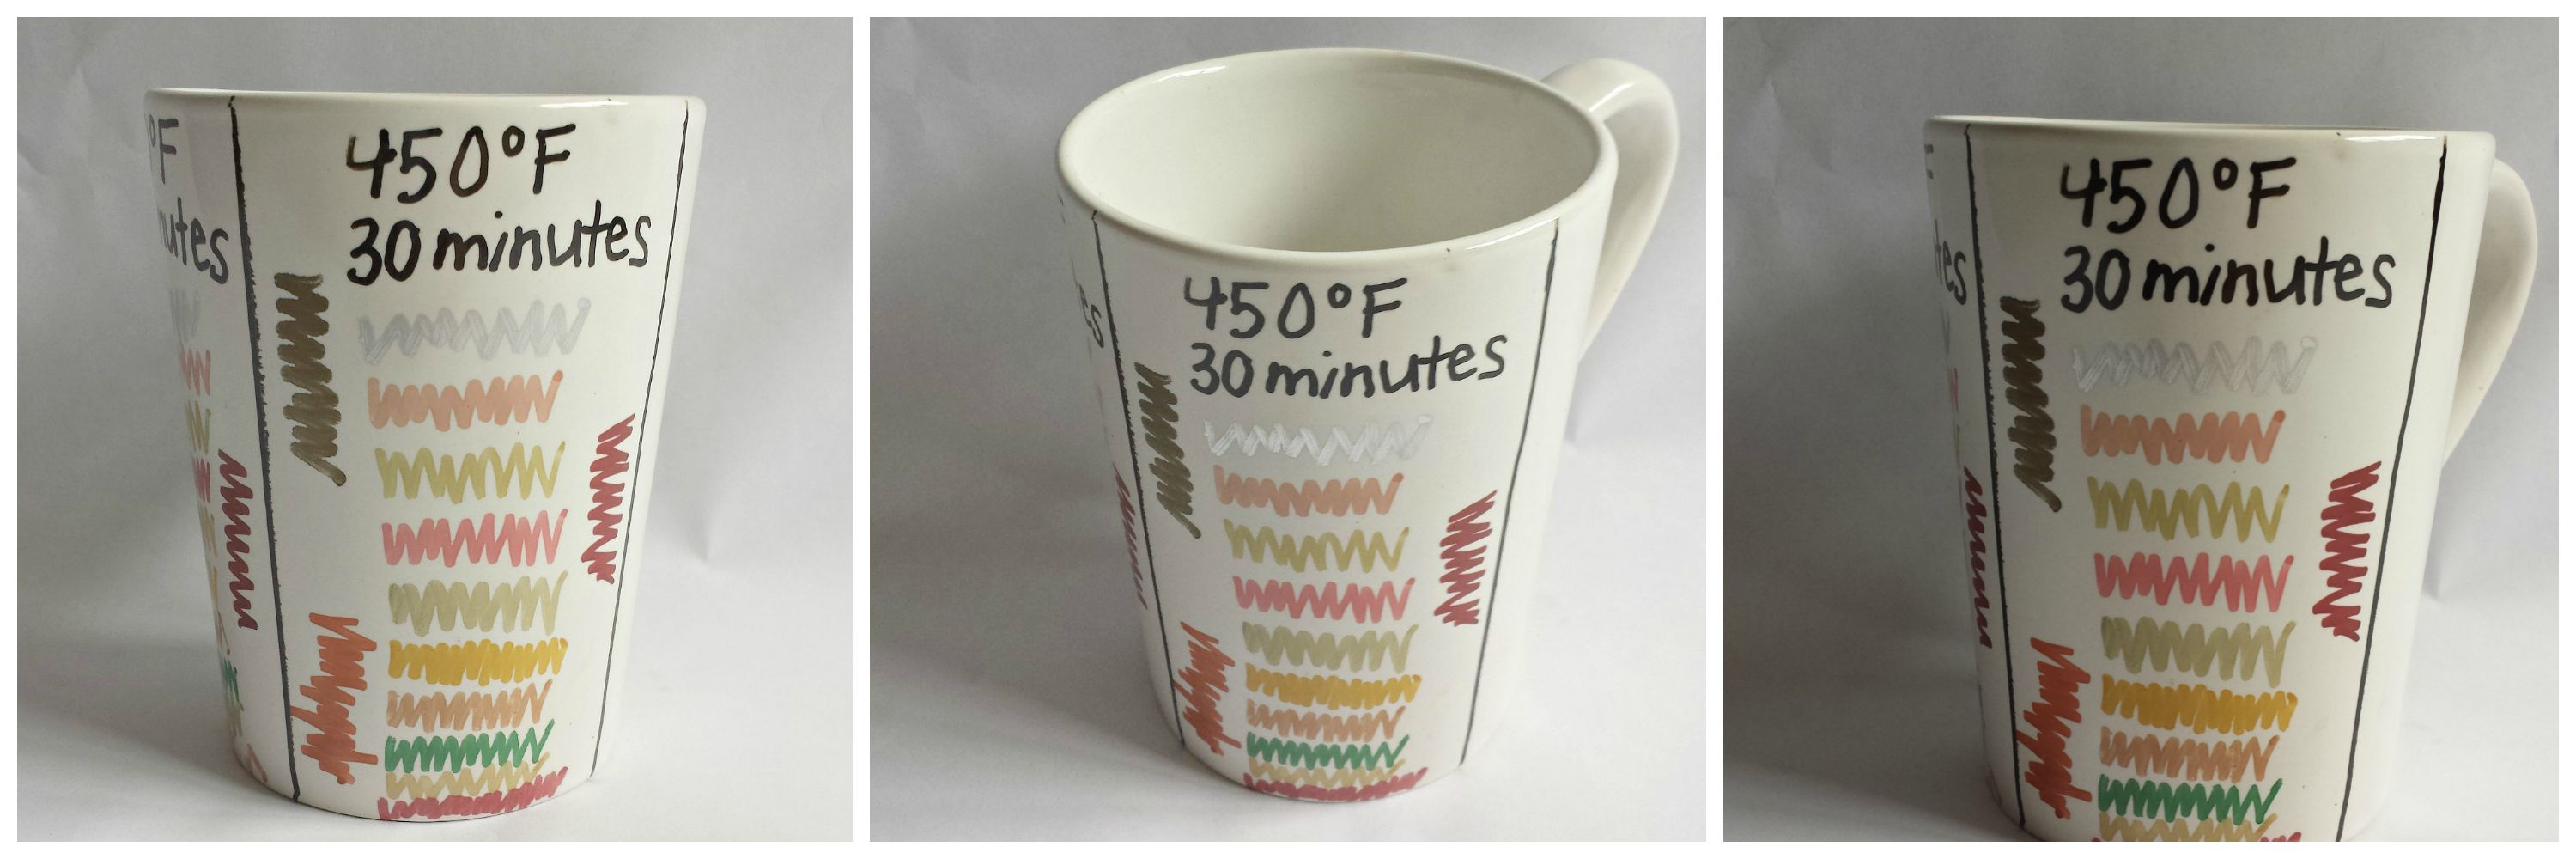 The ultimate guide to sharpie mugs the ultimate guide to sharpie mugs tips tricks and hints to get the the ultimate guide to sharpie mugs tips tricks and hints to get the solutioingenieria Images